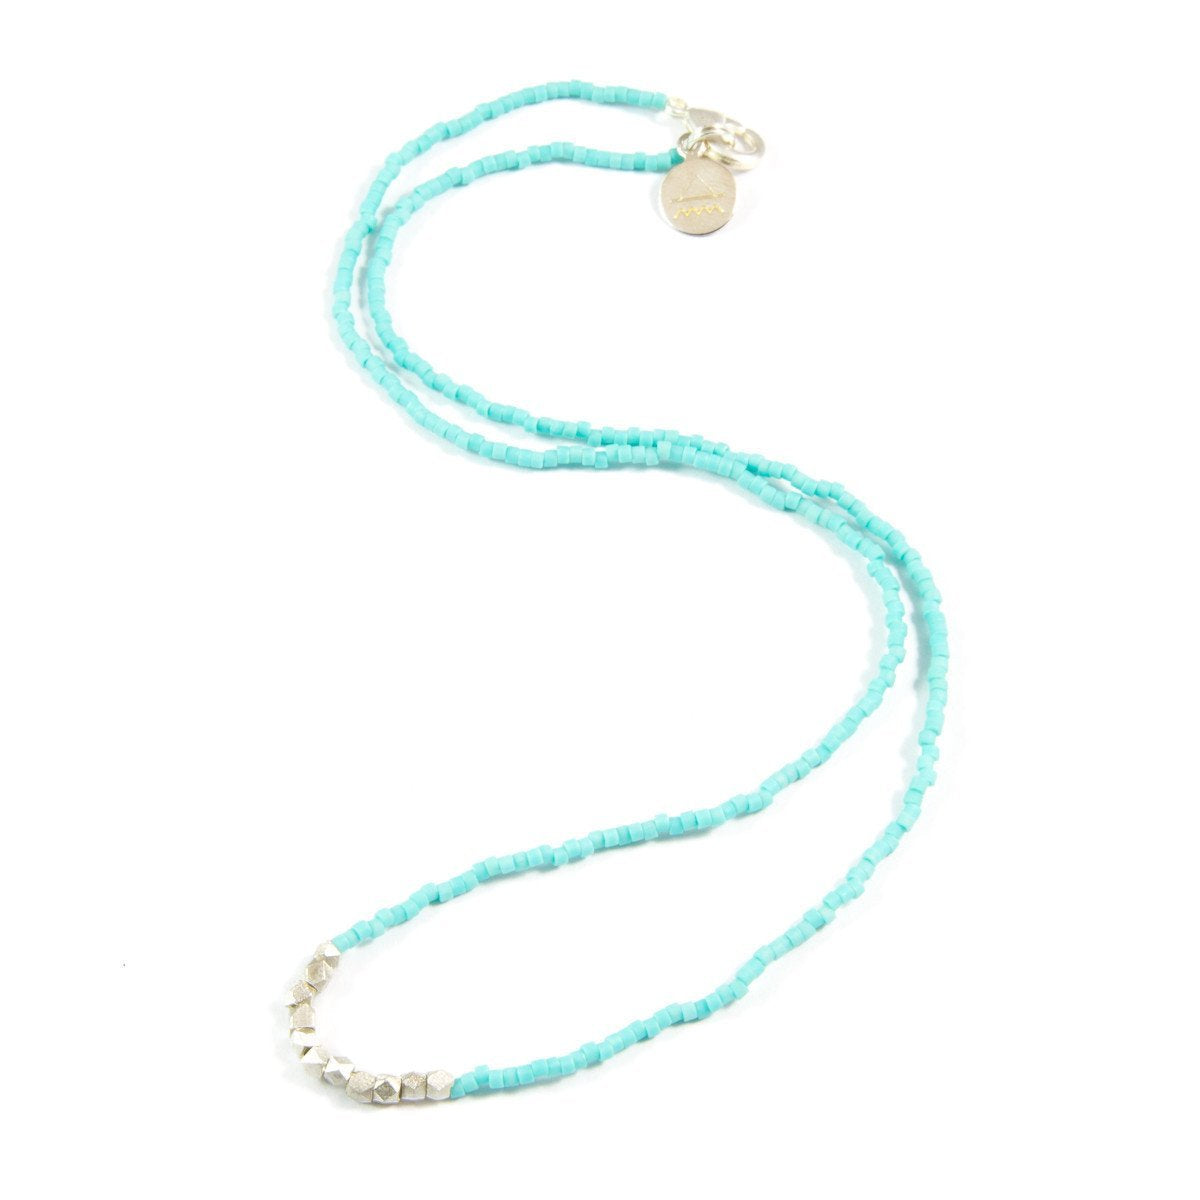 Teal Day to Night Necklace in Silver